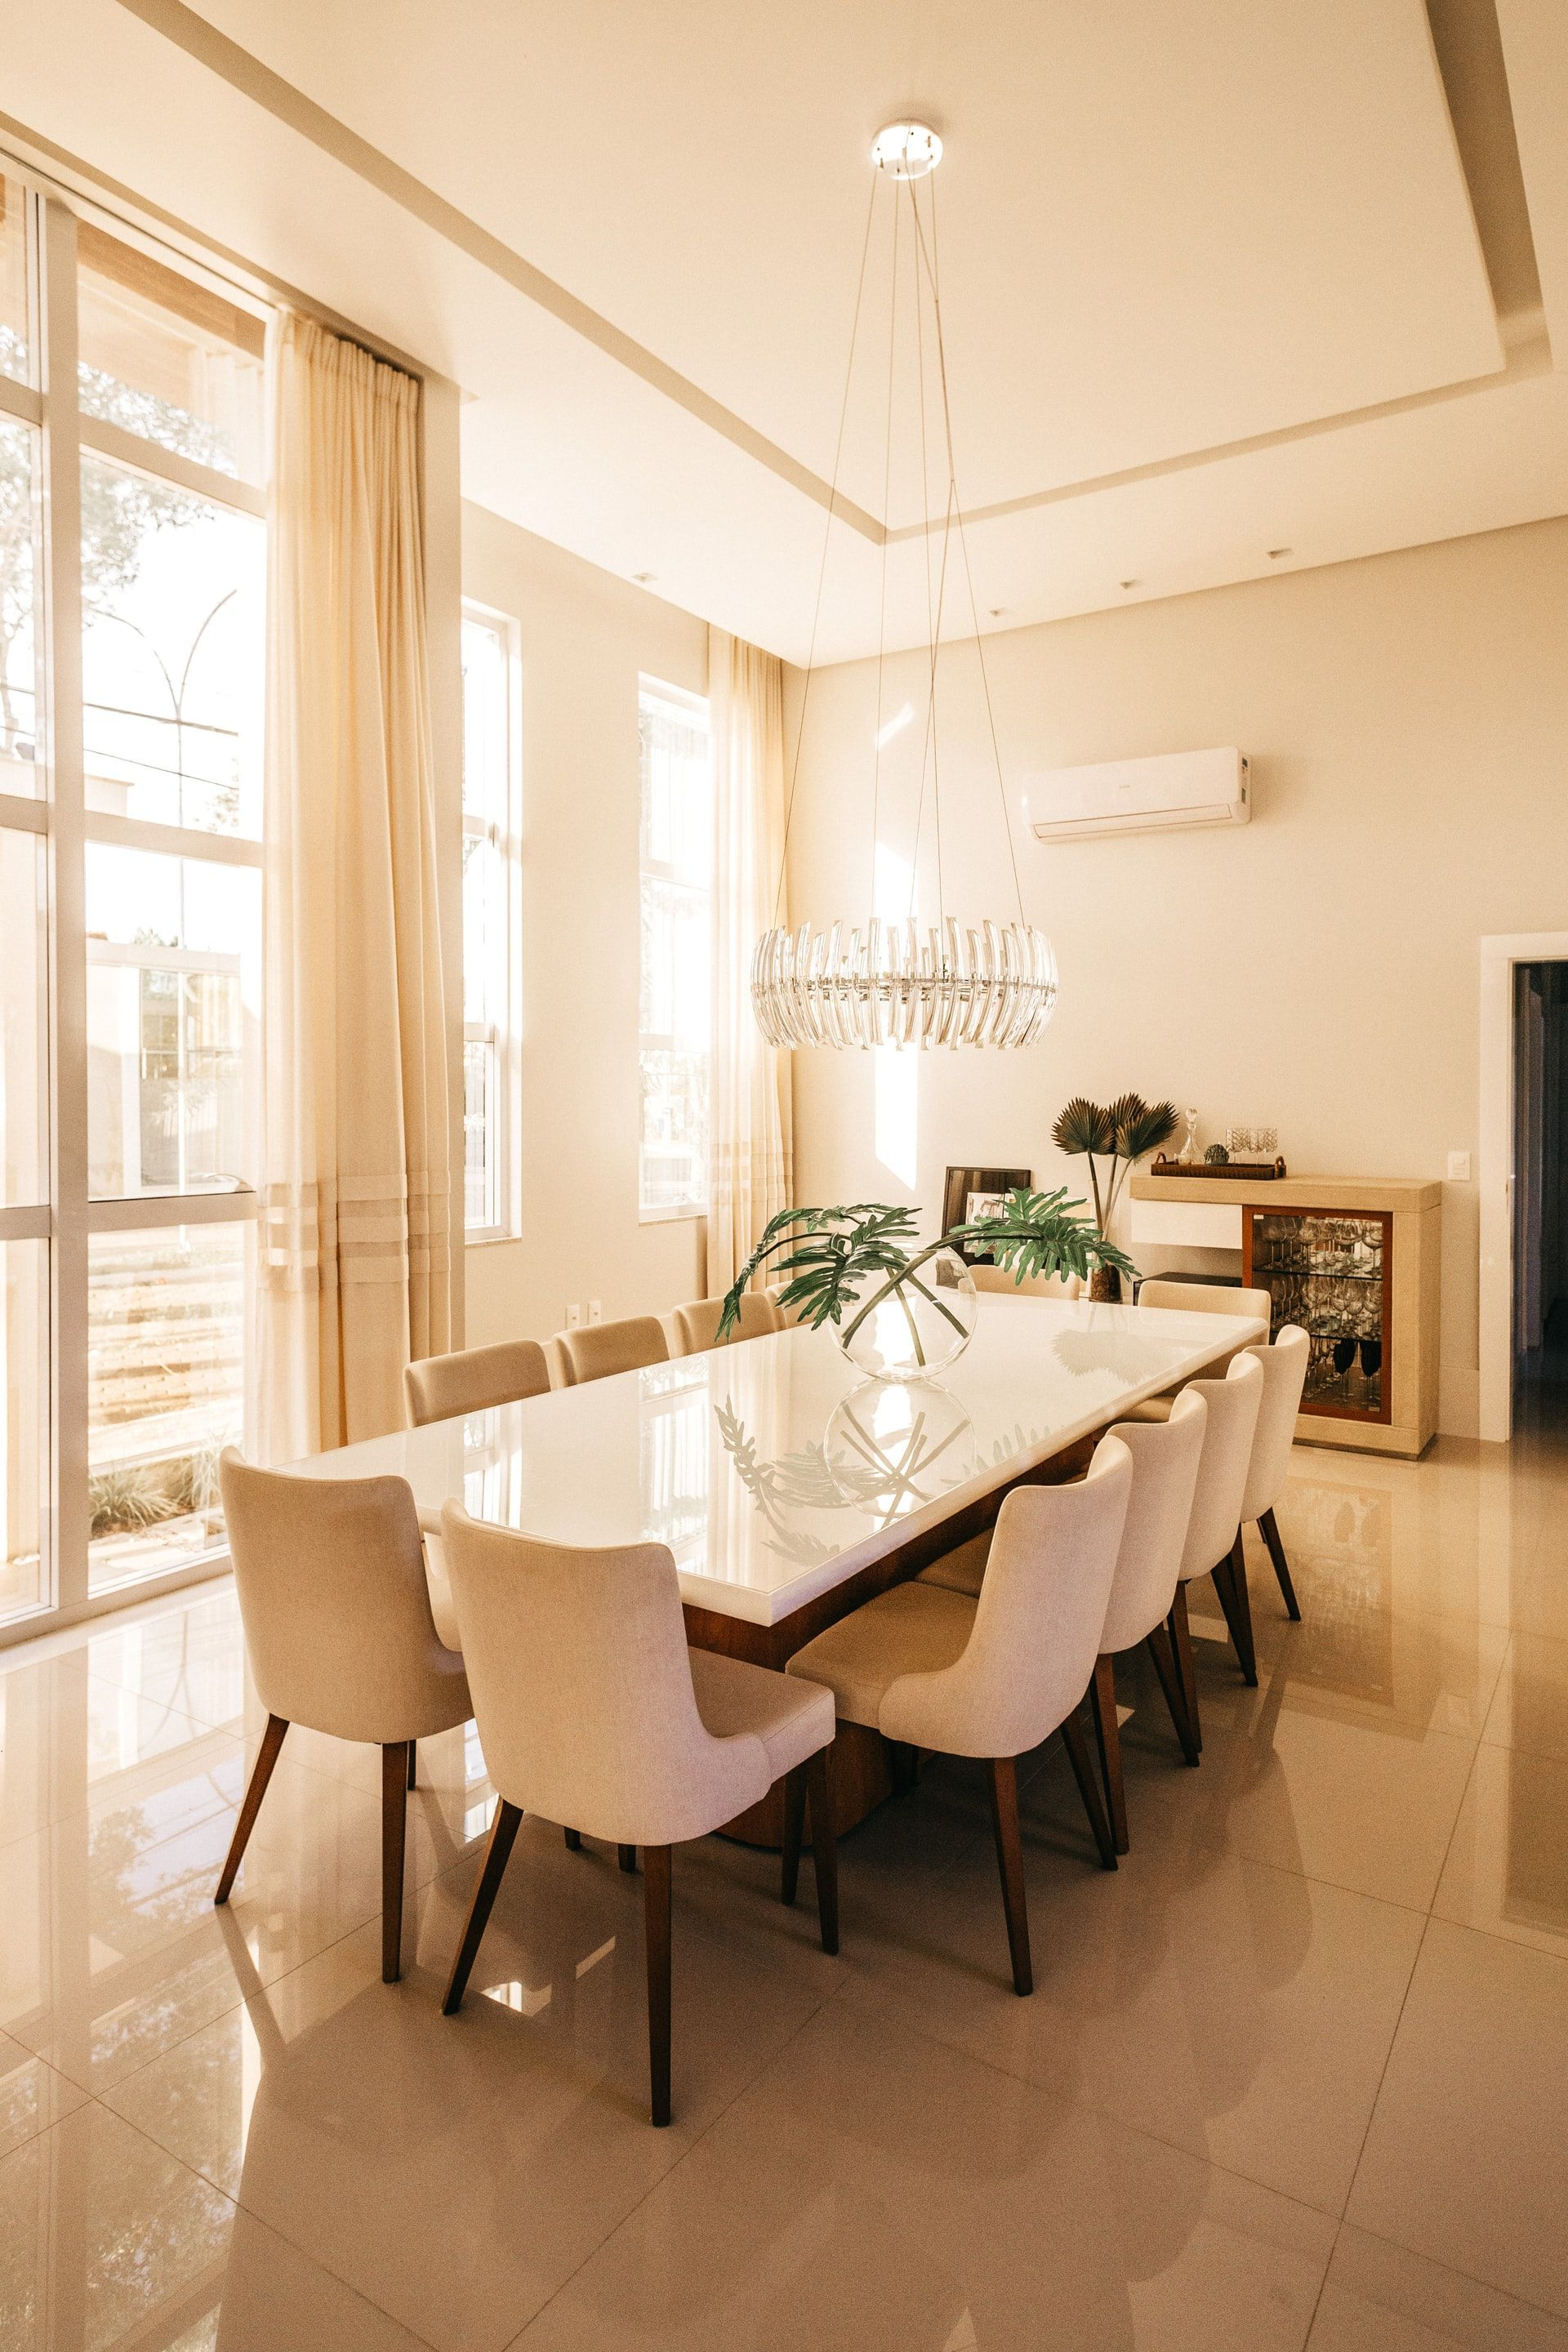 5 Dining Room Designs To Inspire You To Remodel Your Home Beautiful Dining Rooms Dining Room Furniture Arrangement Dining Room Decor